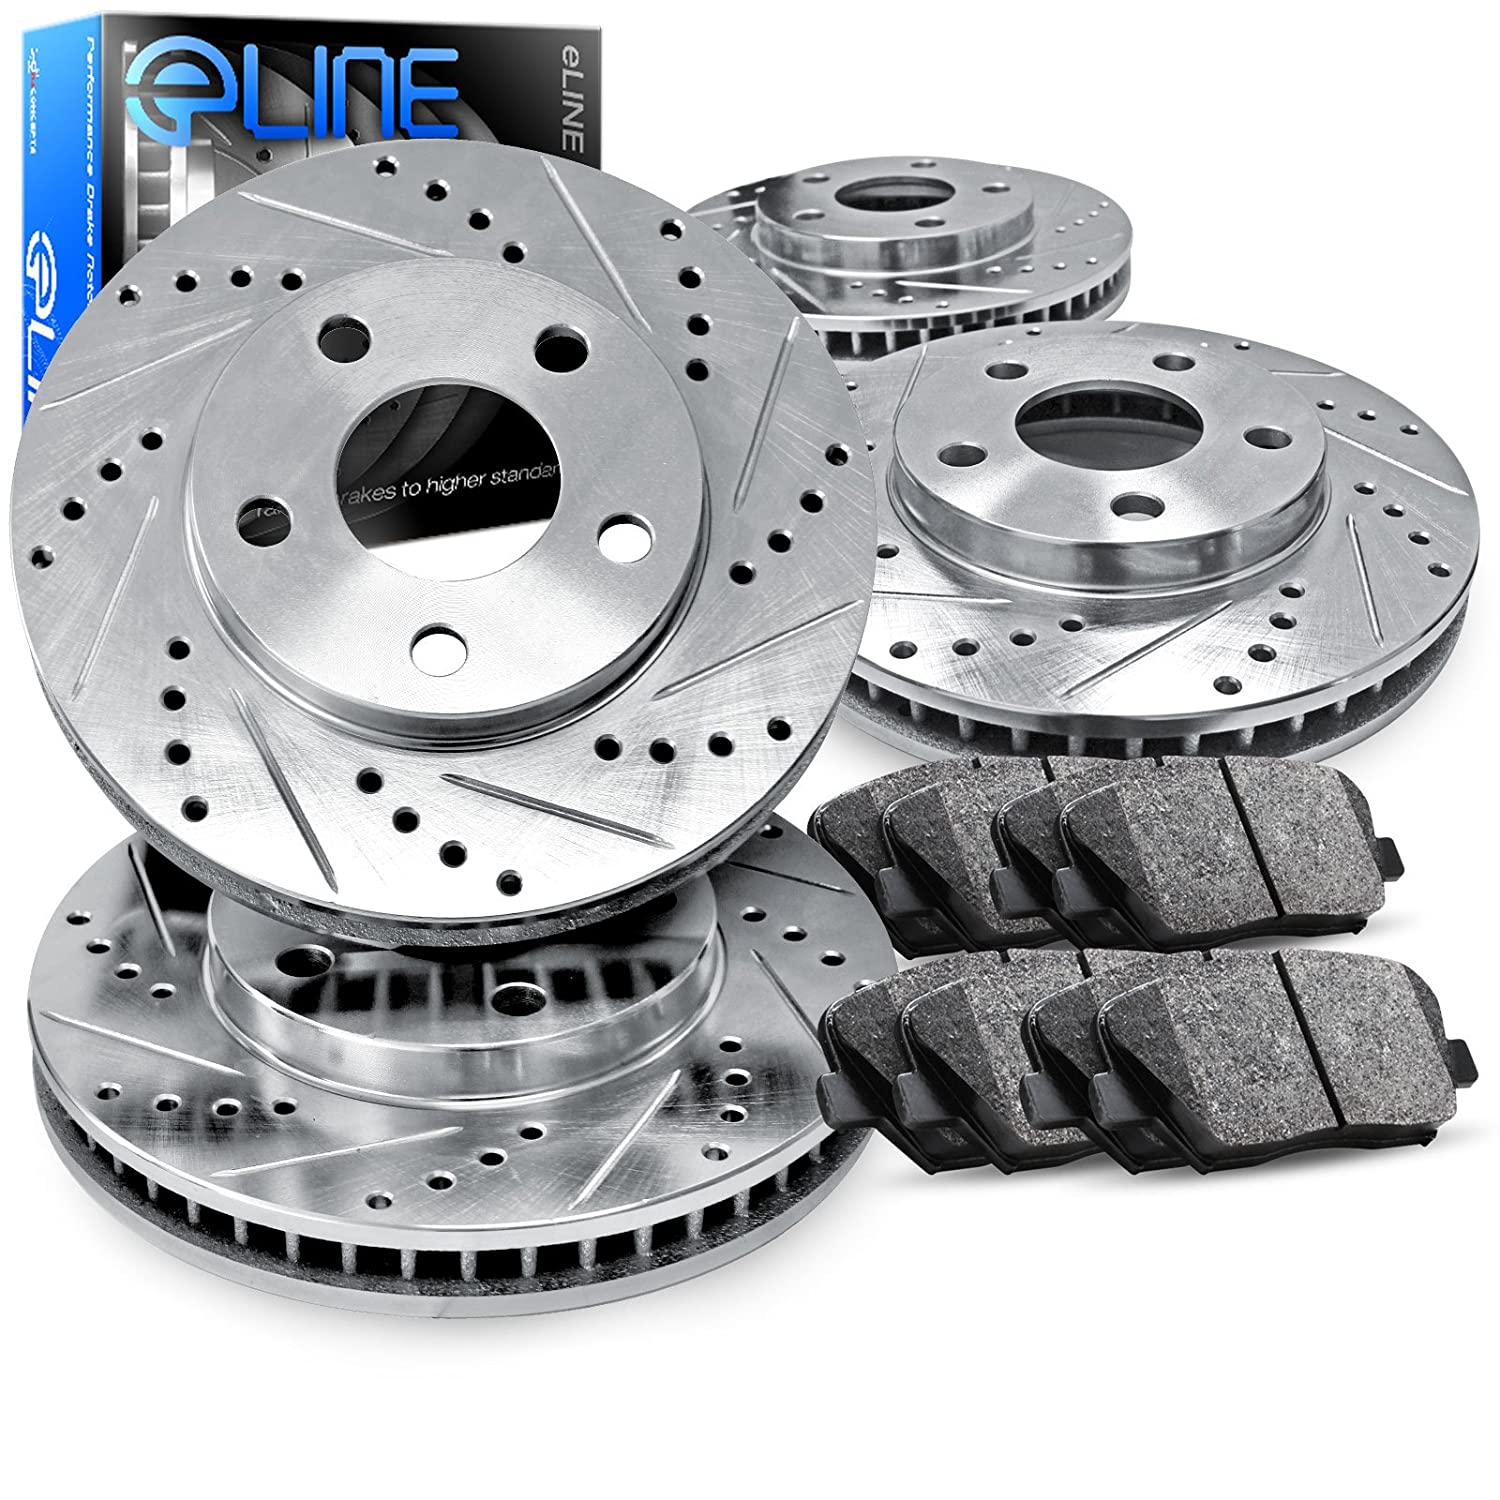 Amazon.com: 2004-2008 Acura TL Full Kit eLine Drilled Slotted Brake Rotors  & Ceramic Pads: Automotive